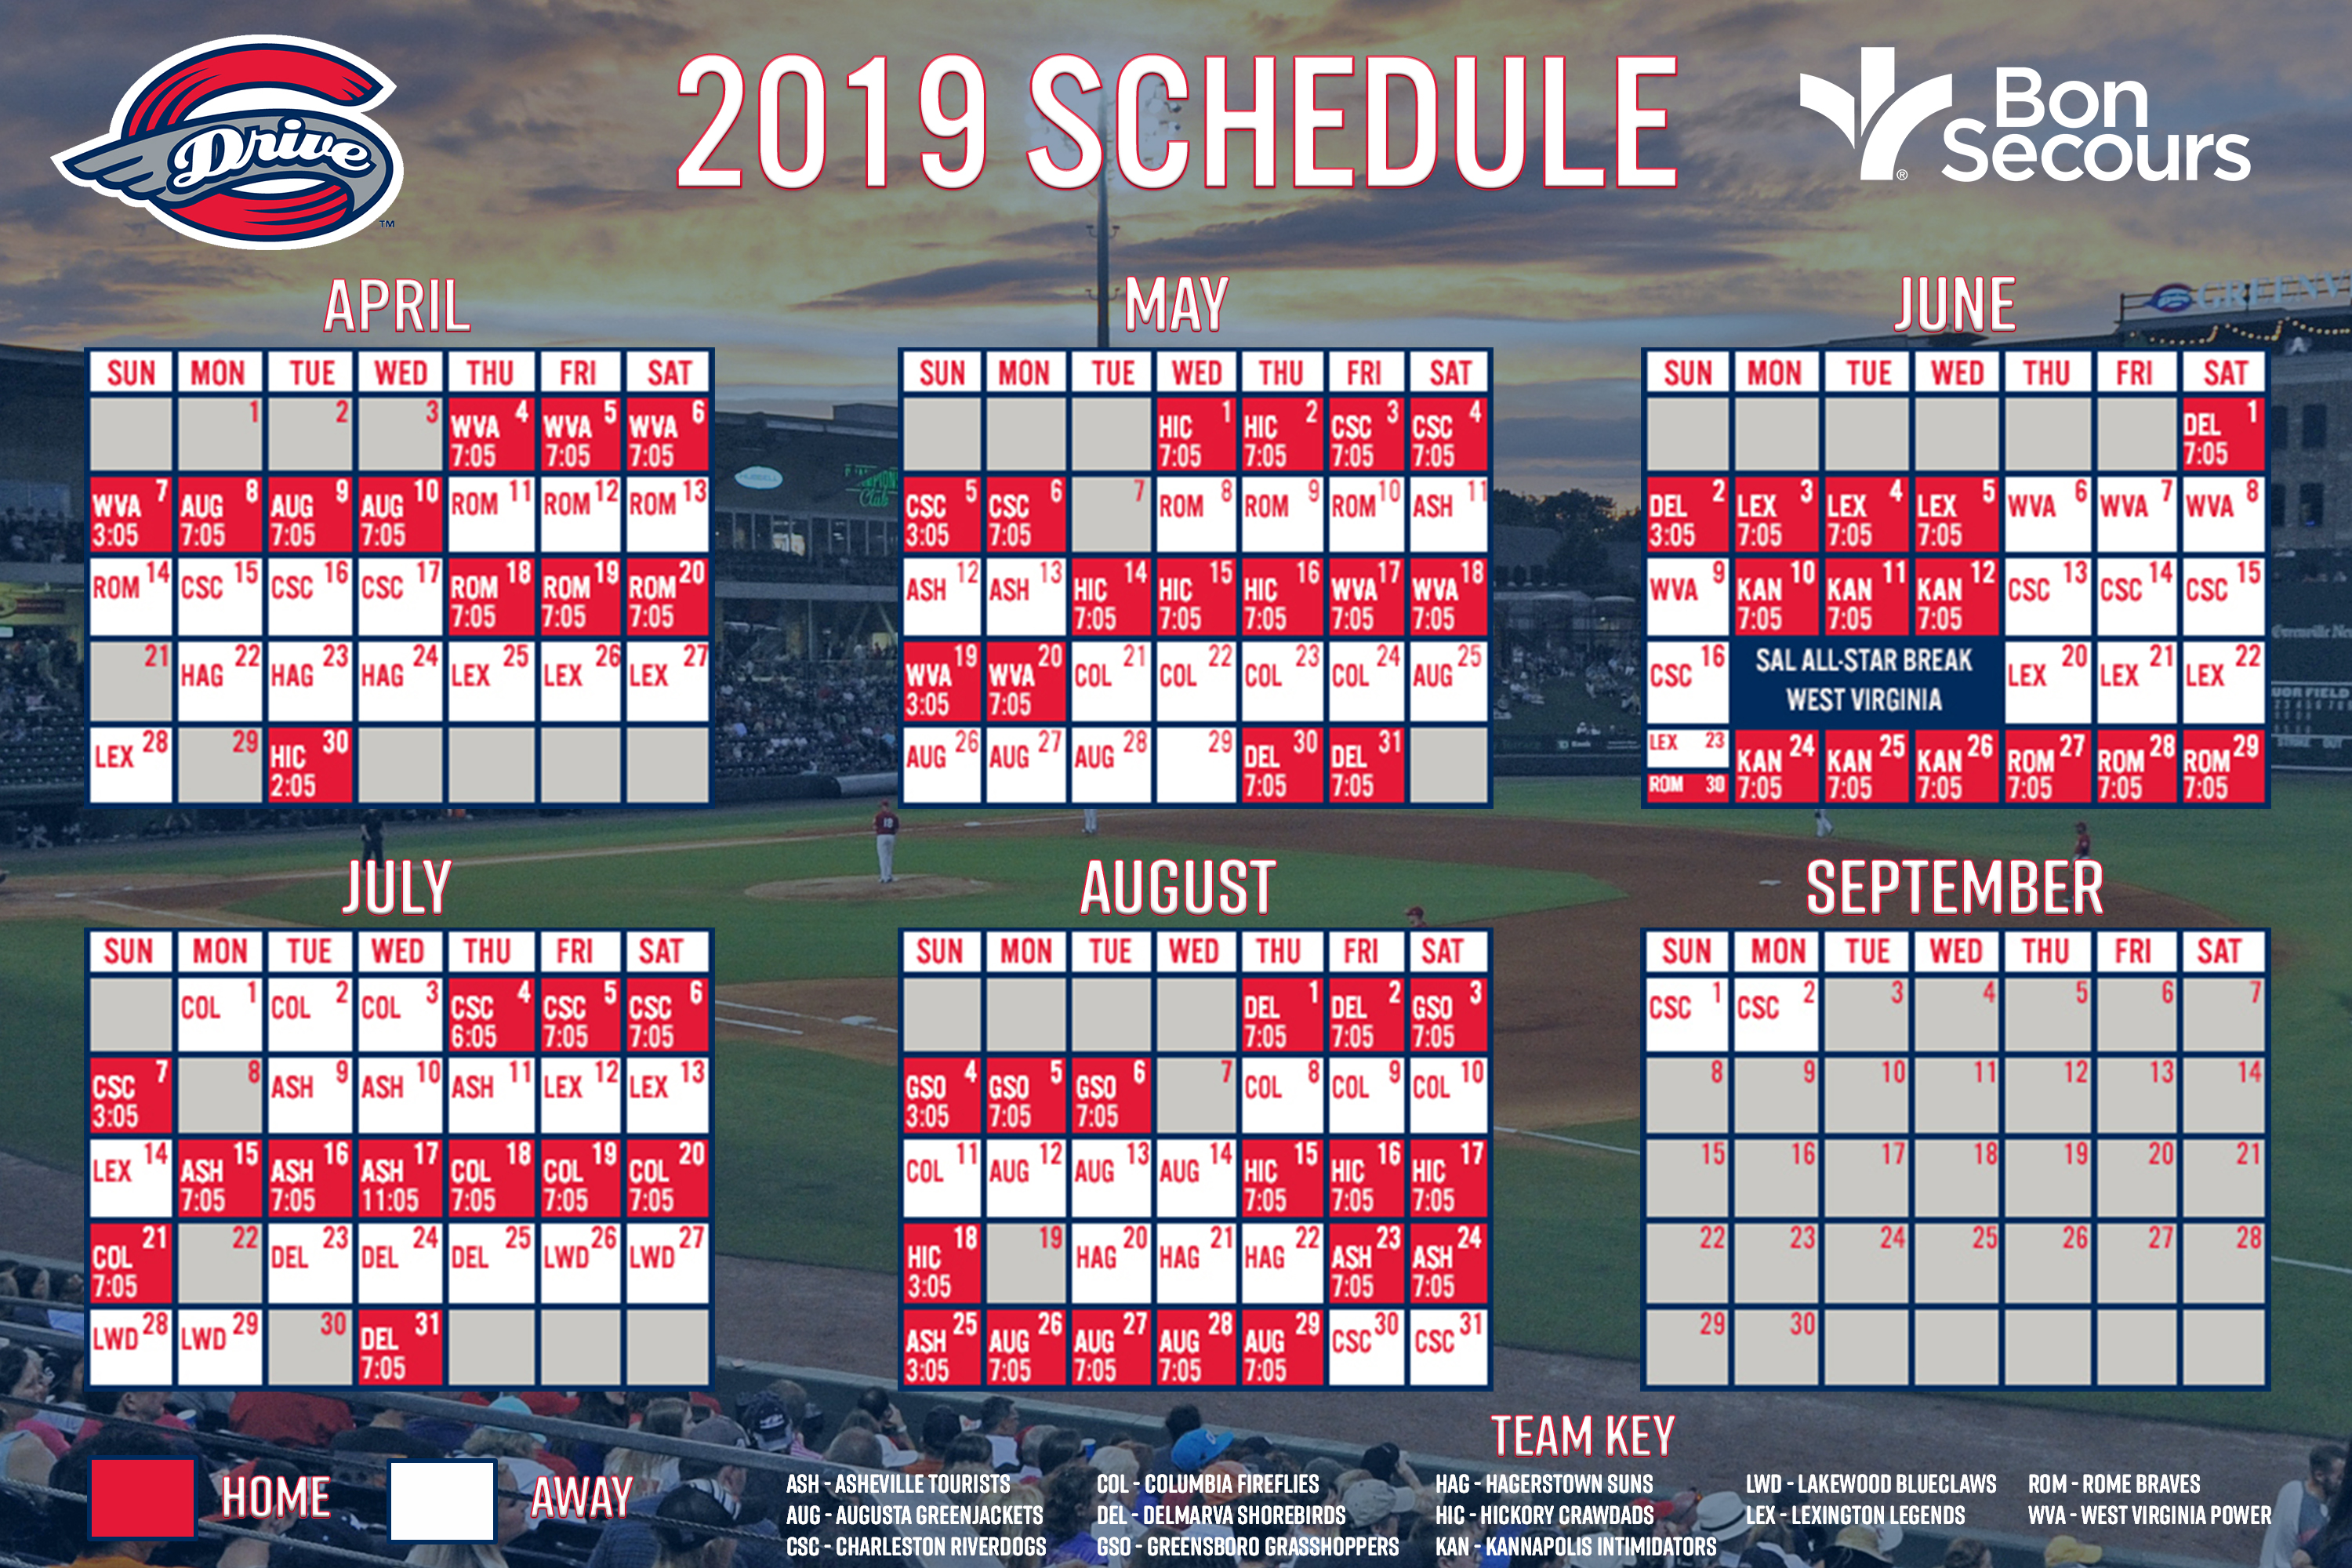 atlanta braves schedule for september 2019